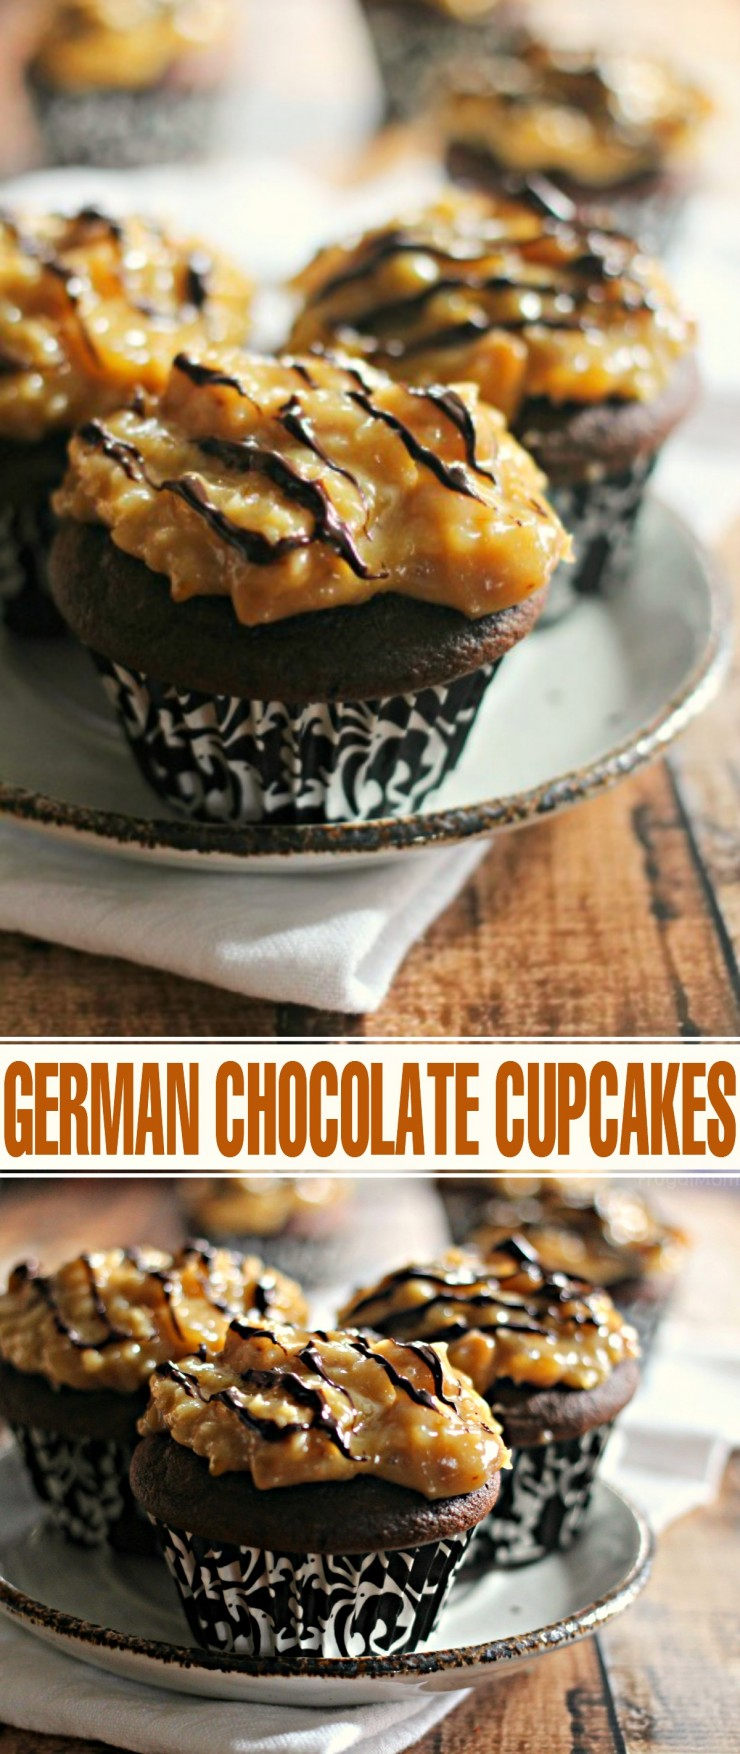 German Chocolate Cupcakes are a delicious chocolate dessert, you will find yourself baking this cupcake recipe over and over again!